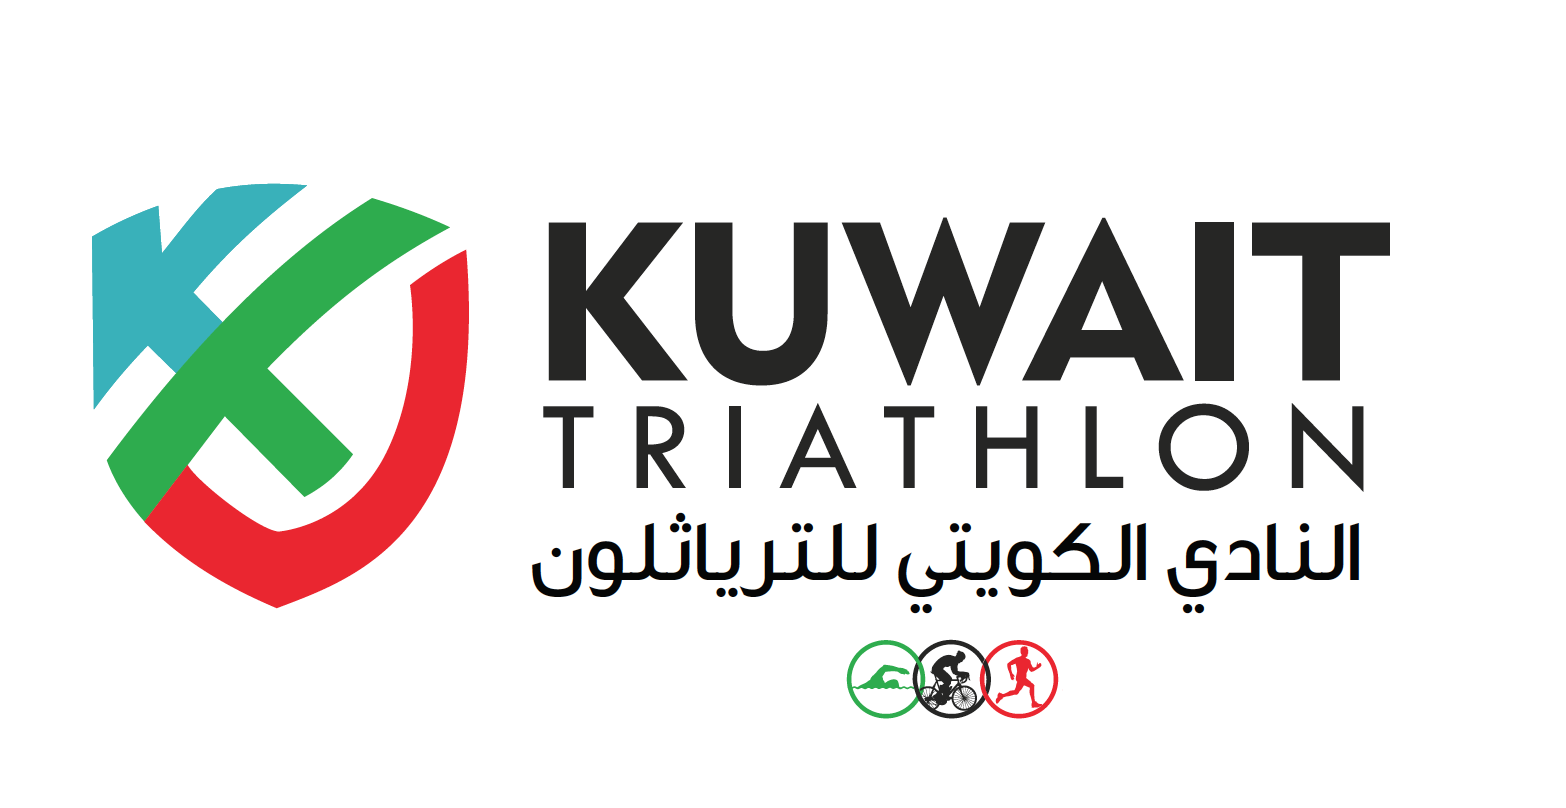 Kuwait Triathlon Club logo